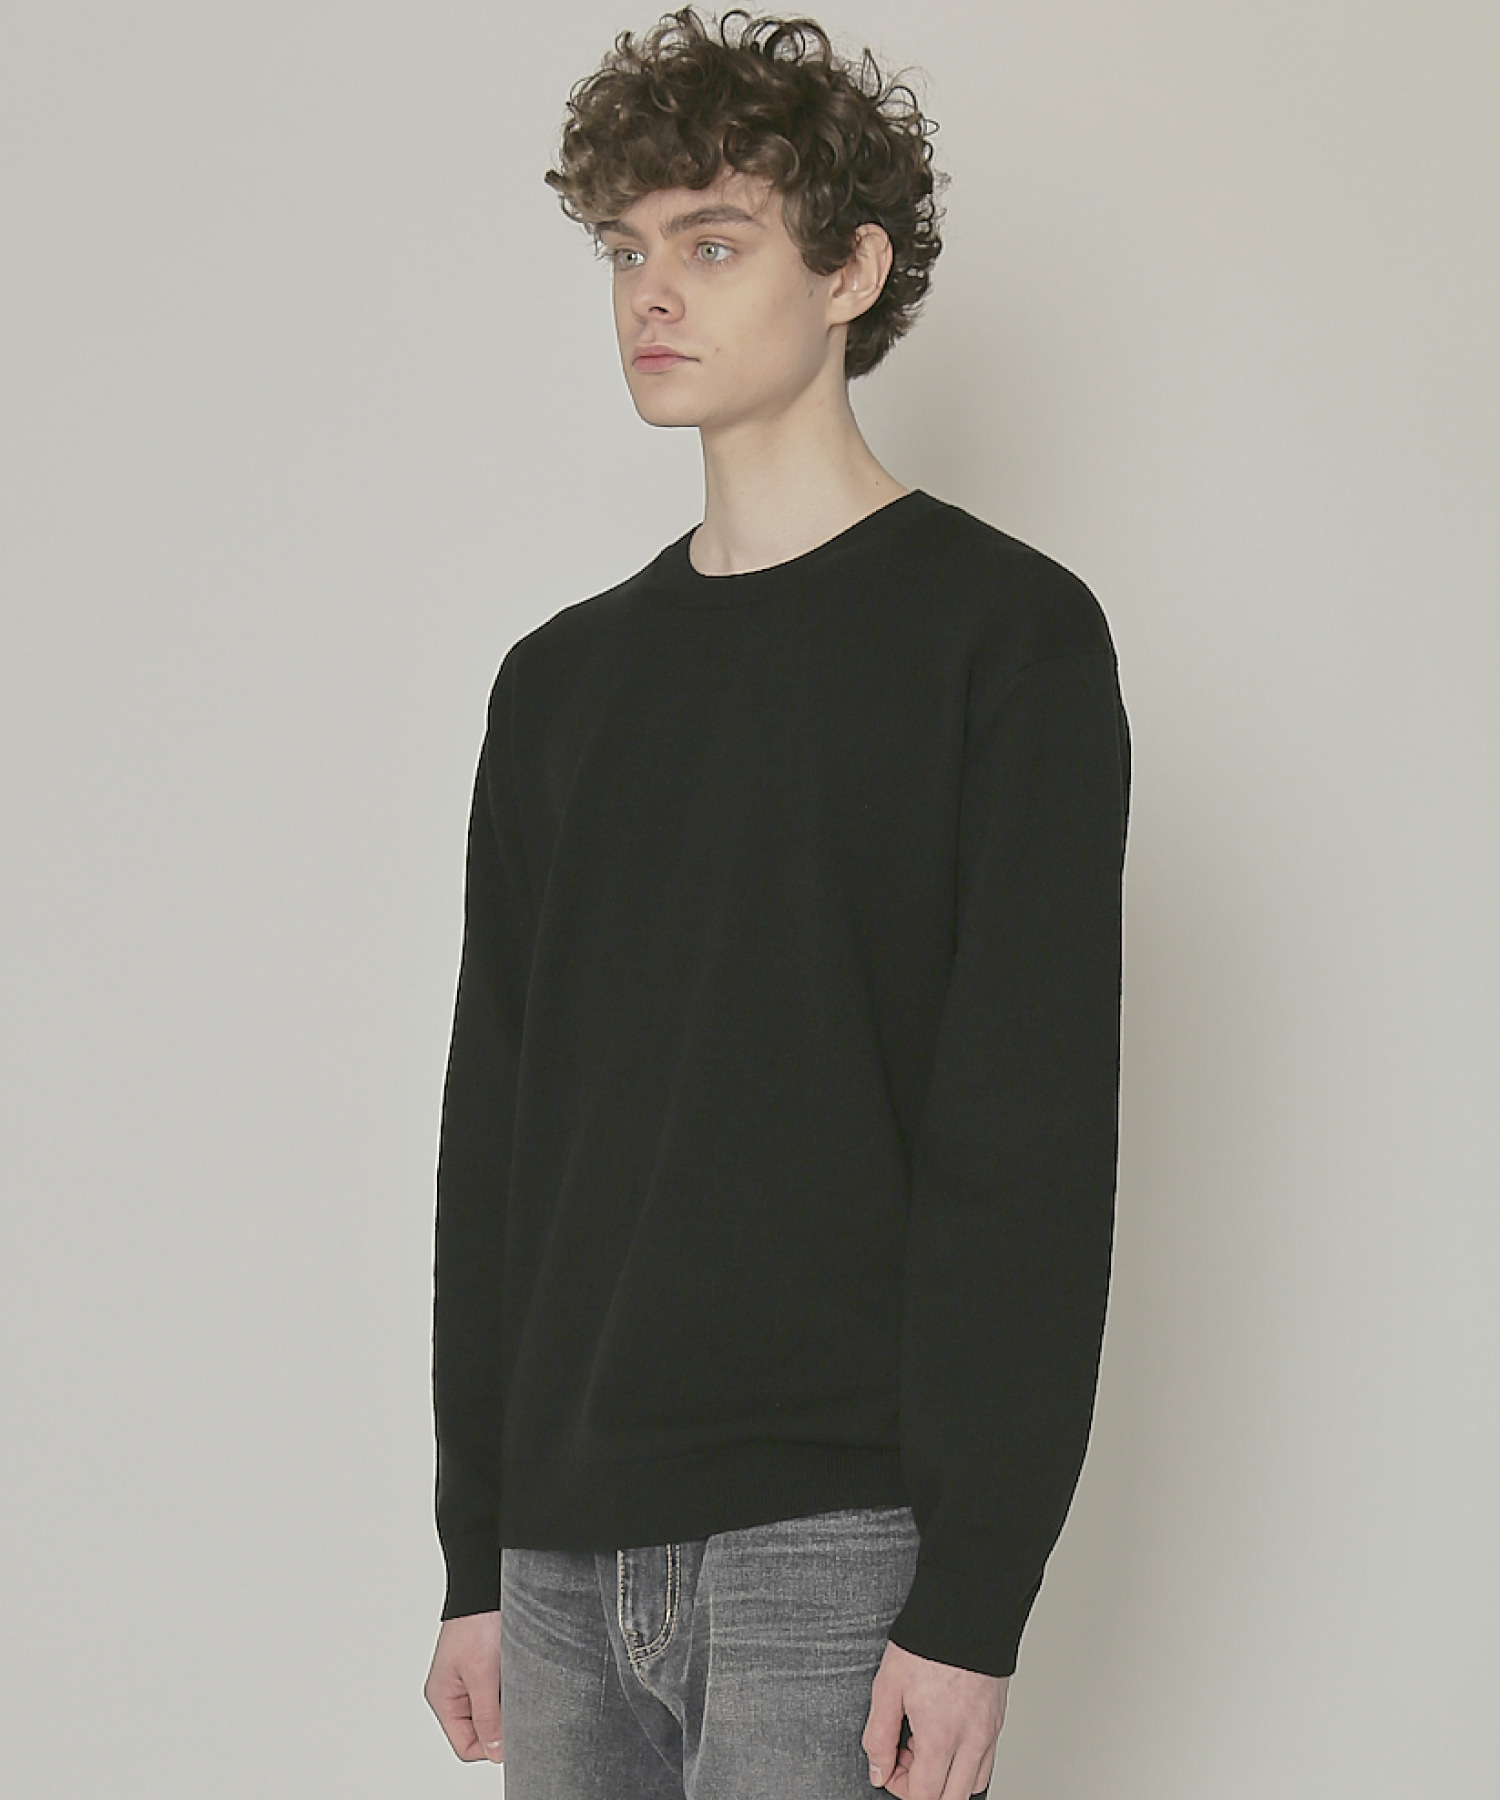 DWS SOFT BASIC ROUND SWEATER(BLACK)